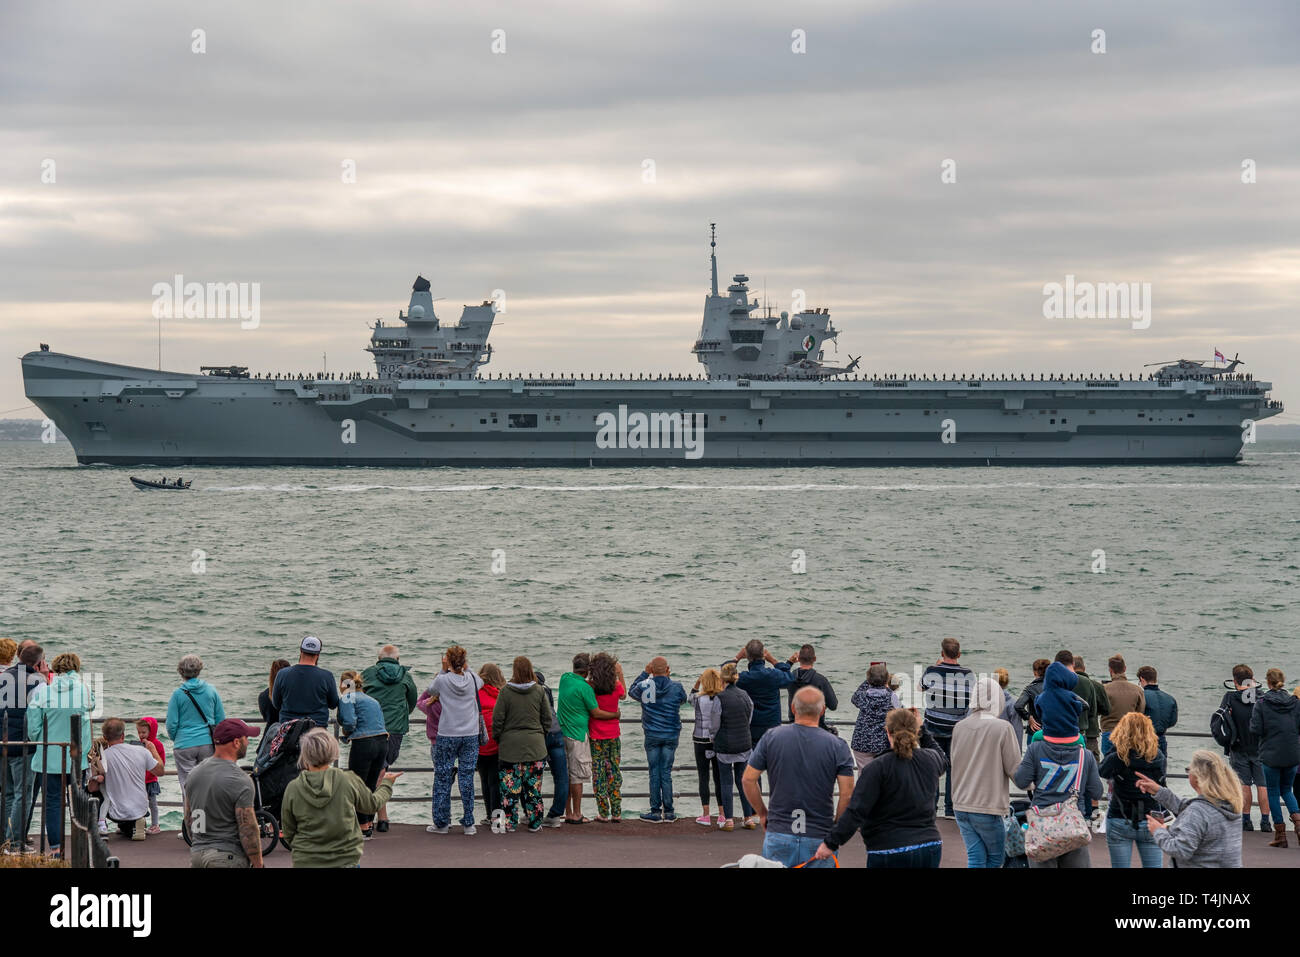 People line the sea wall at Southsea seafront, UK on 18/8/18 to watch the aircraft carrier HMS Queen Elizabeth leave for it's deployment to the USA. Stock Photo